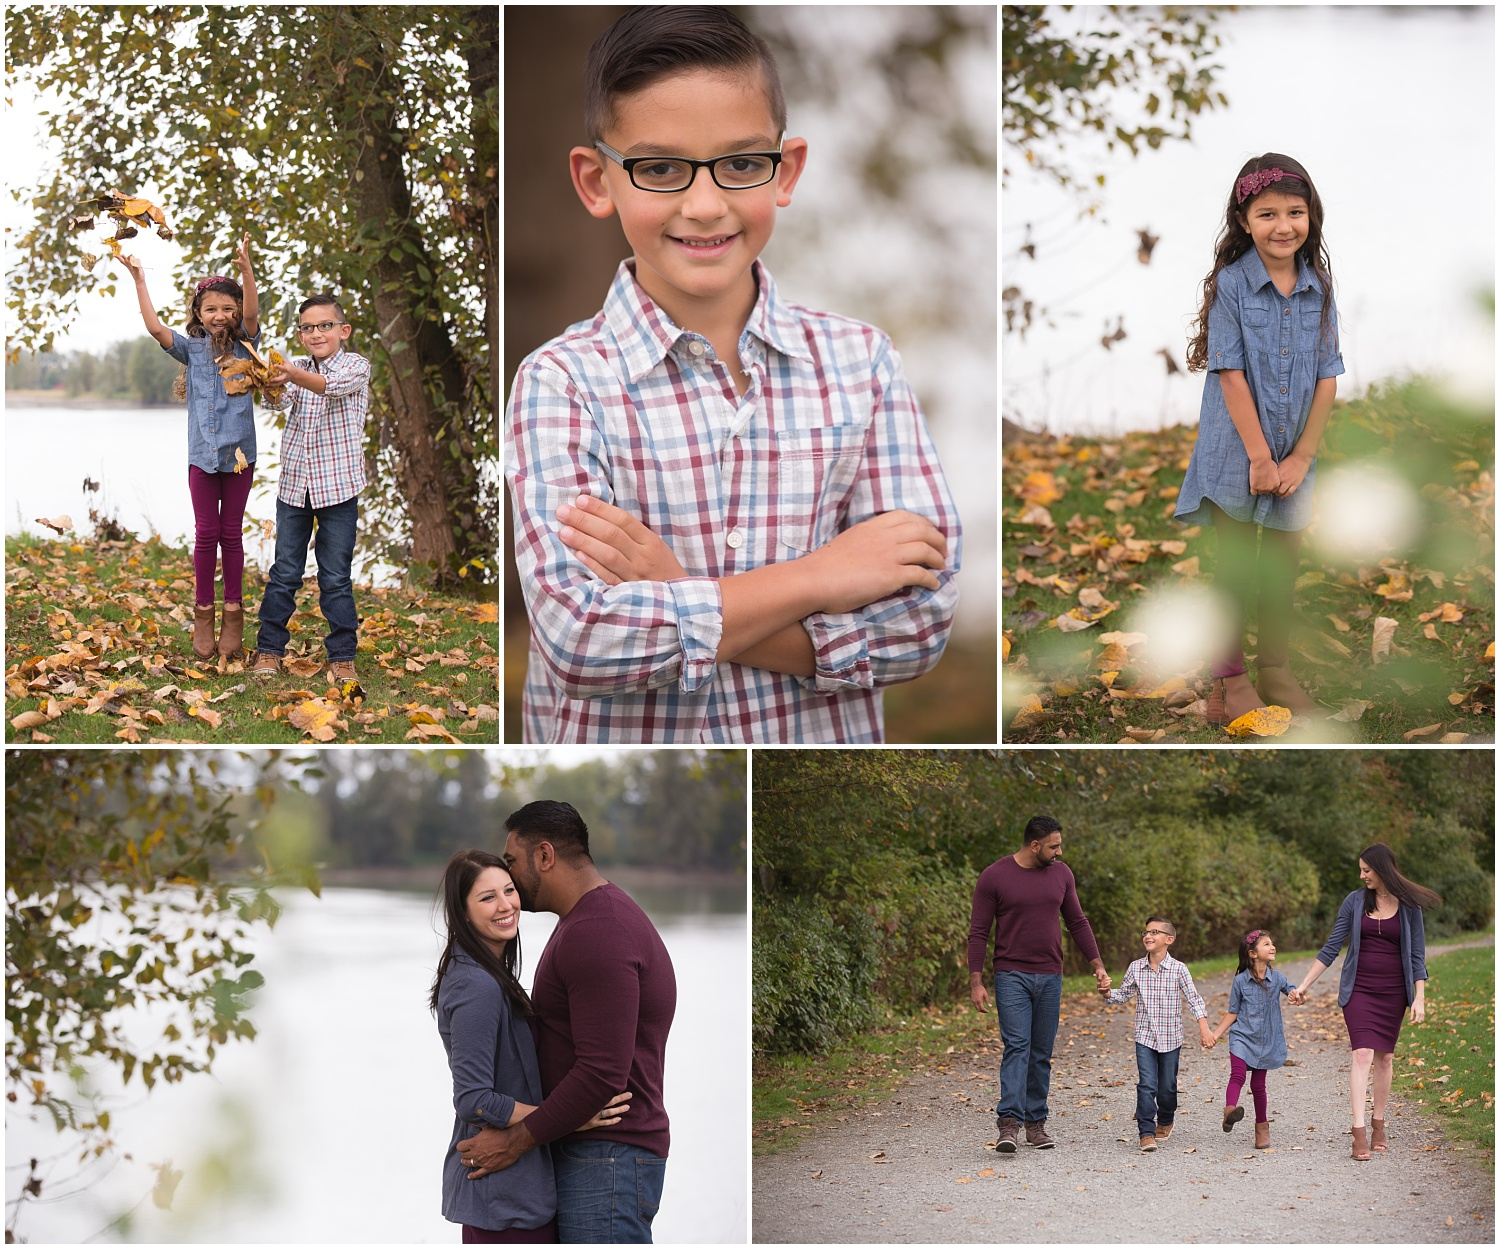 Amazing Day Photography - Fall Mini Sessions - Fall Family Photos - Langley Family Photographer (6).jpg